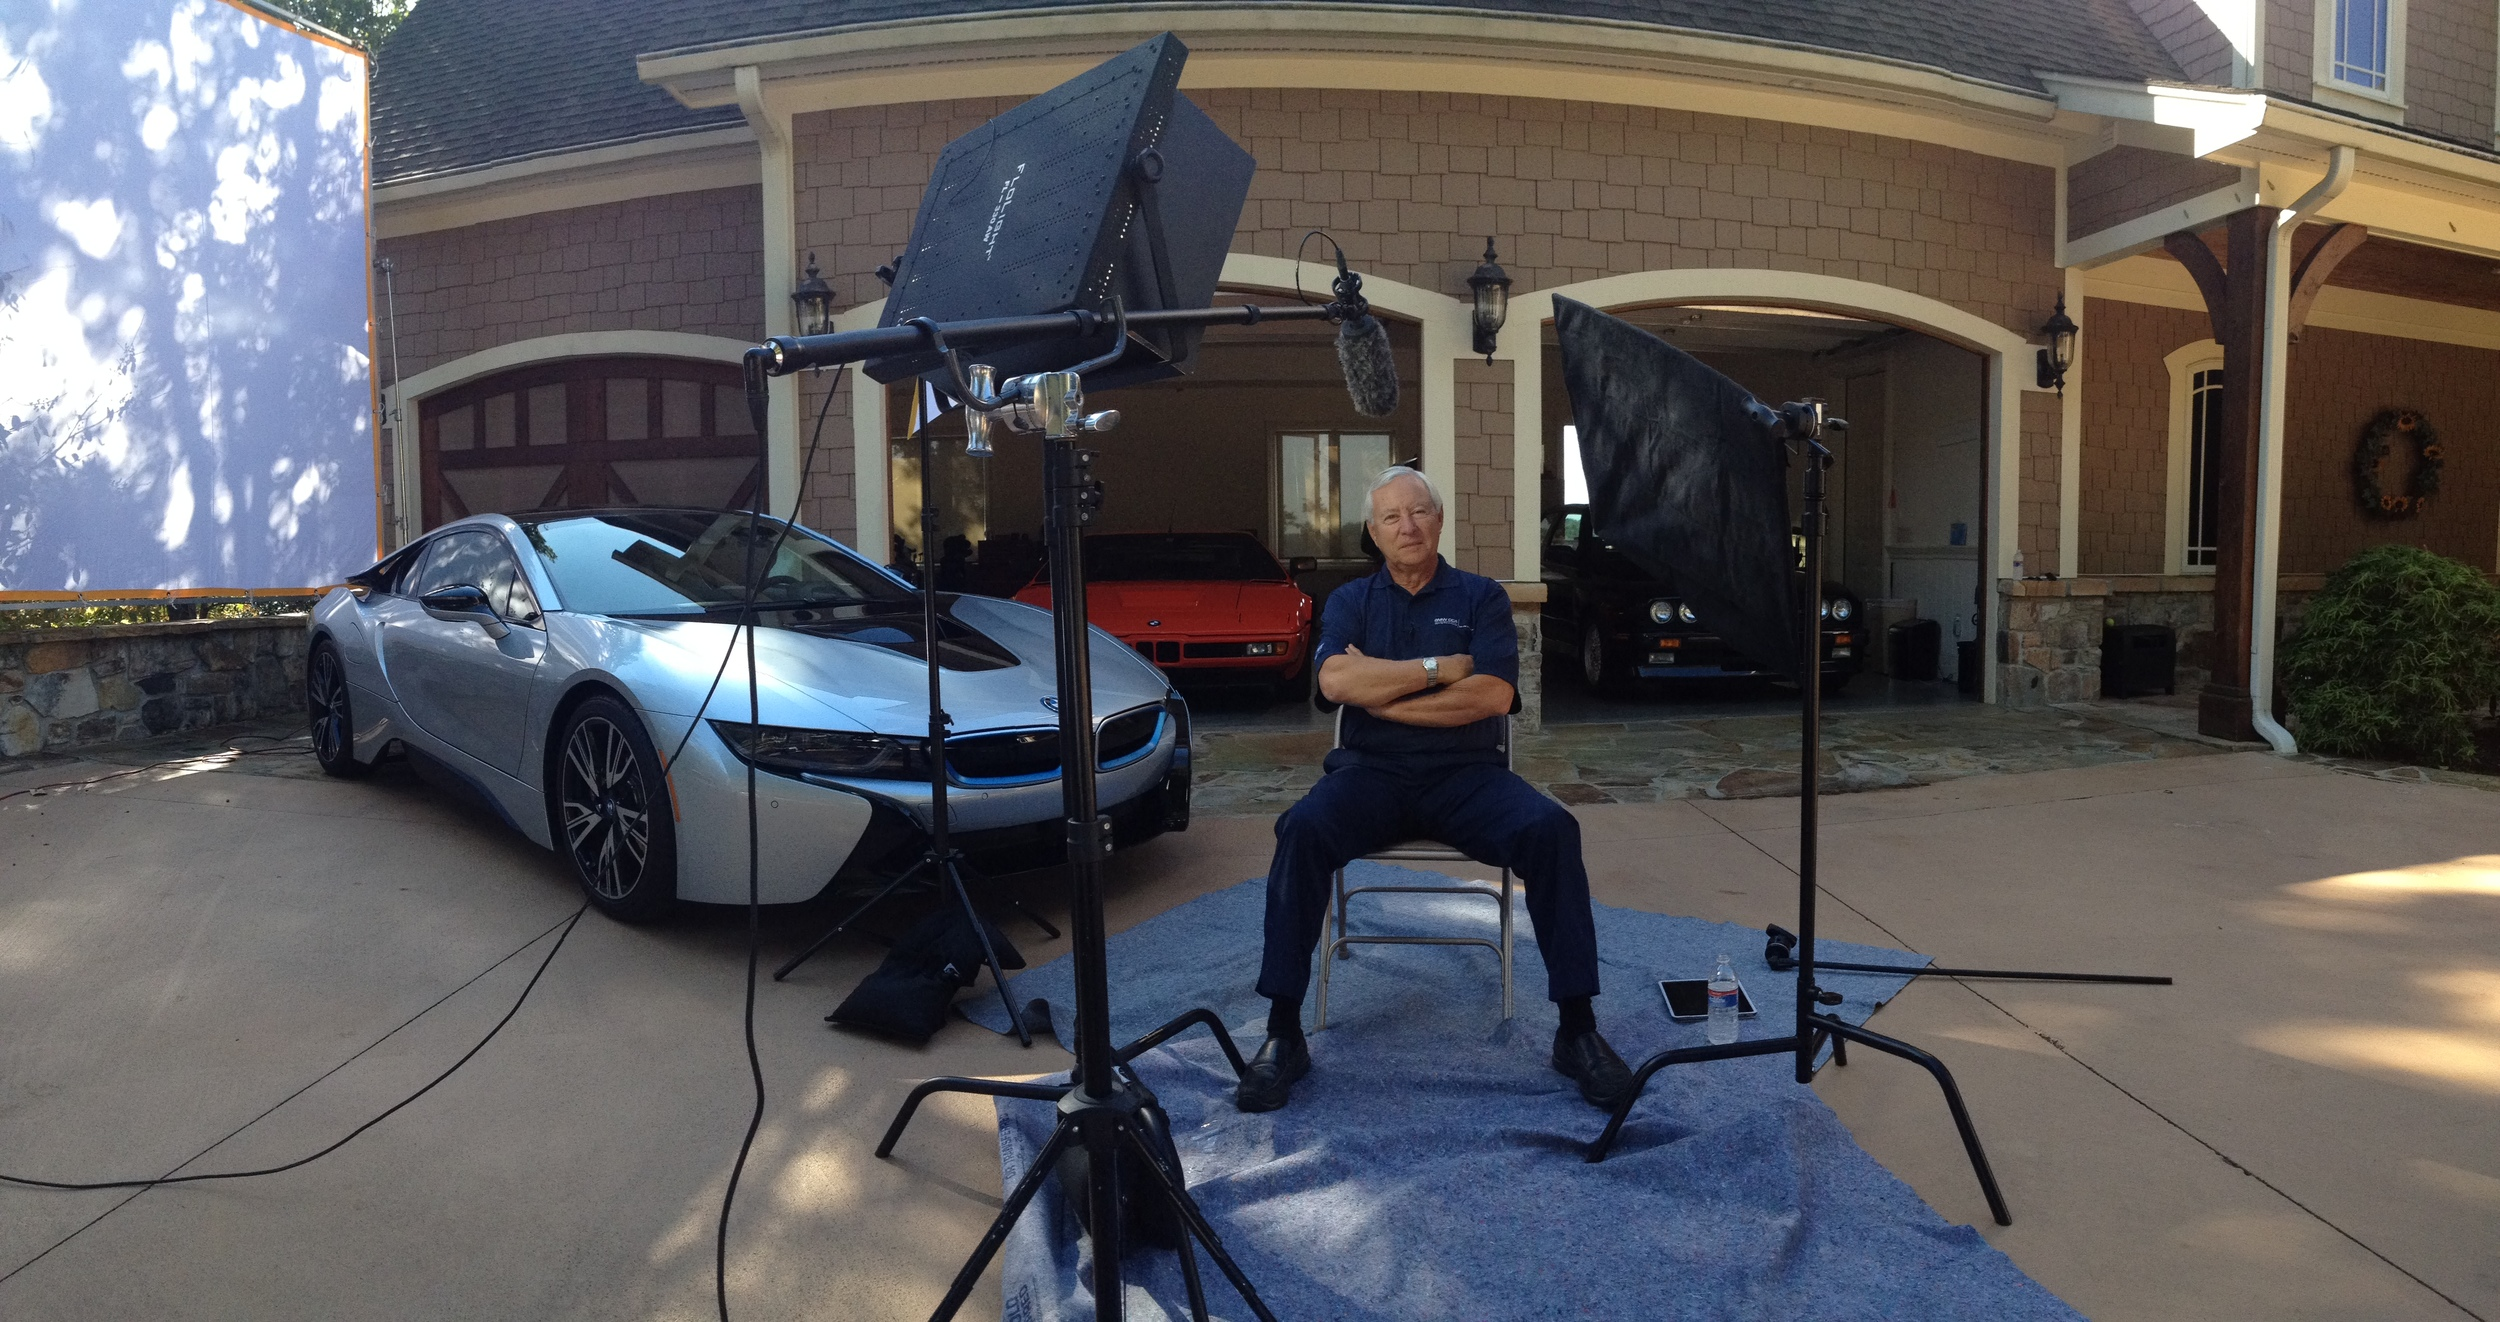 BTS of the BMW i8 interview